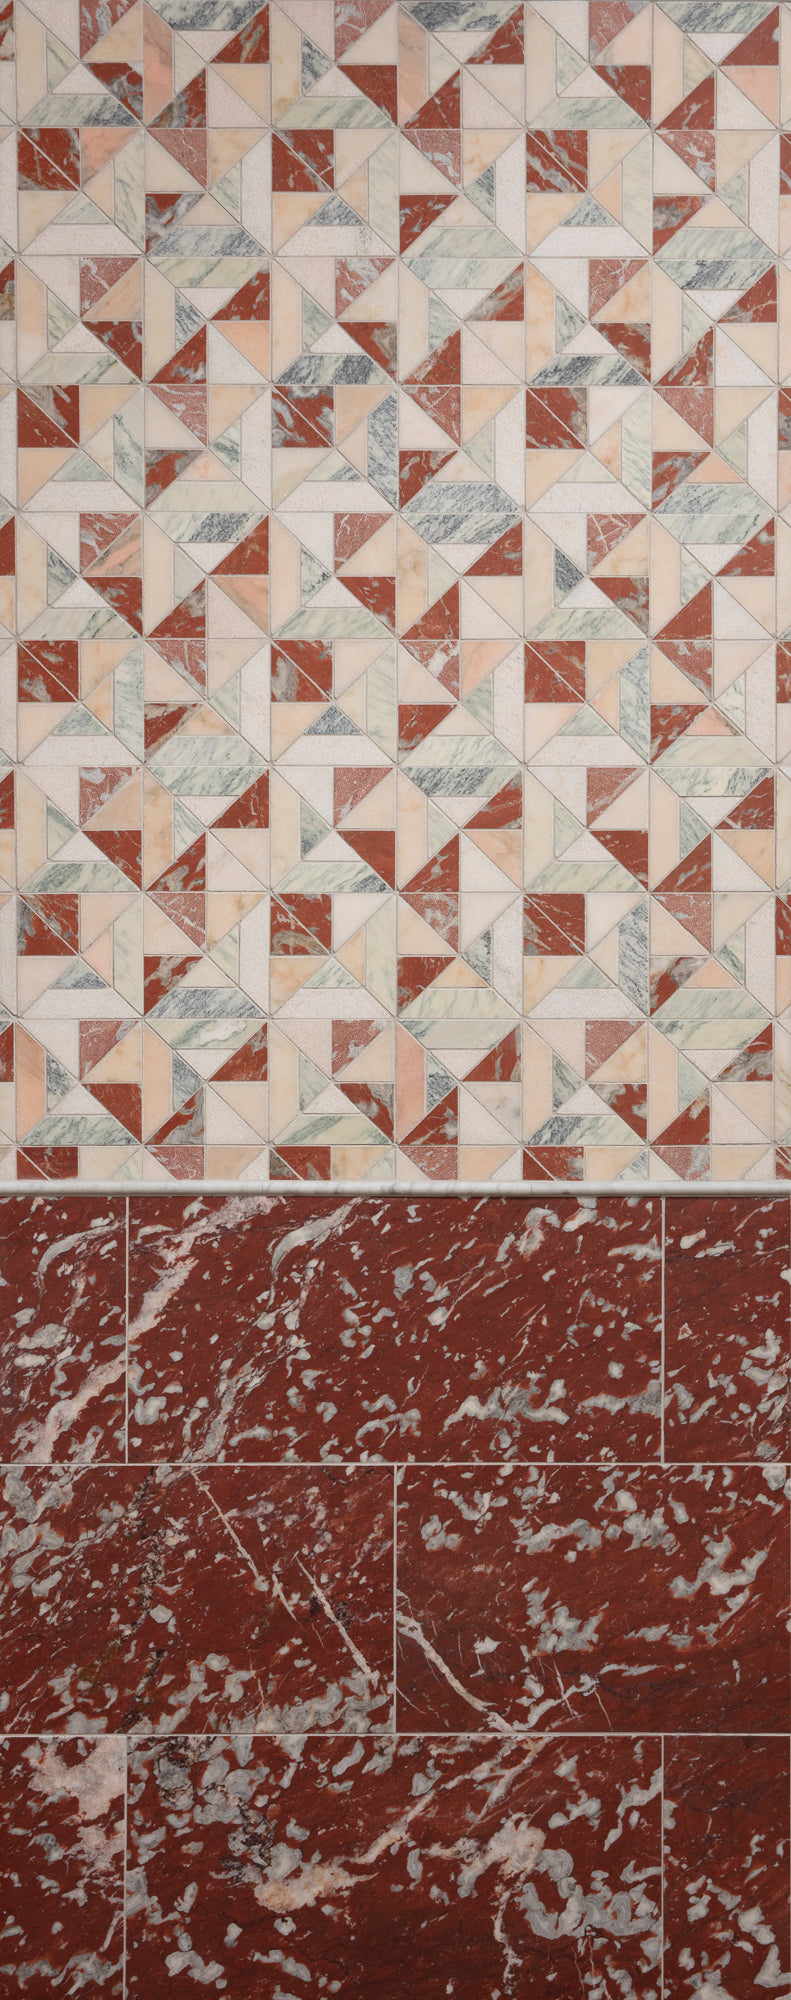 Rosso Francia Marble Field Tile installation photo